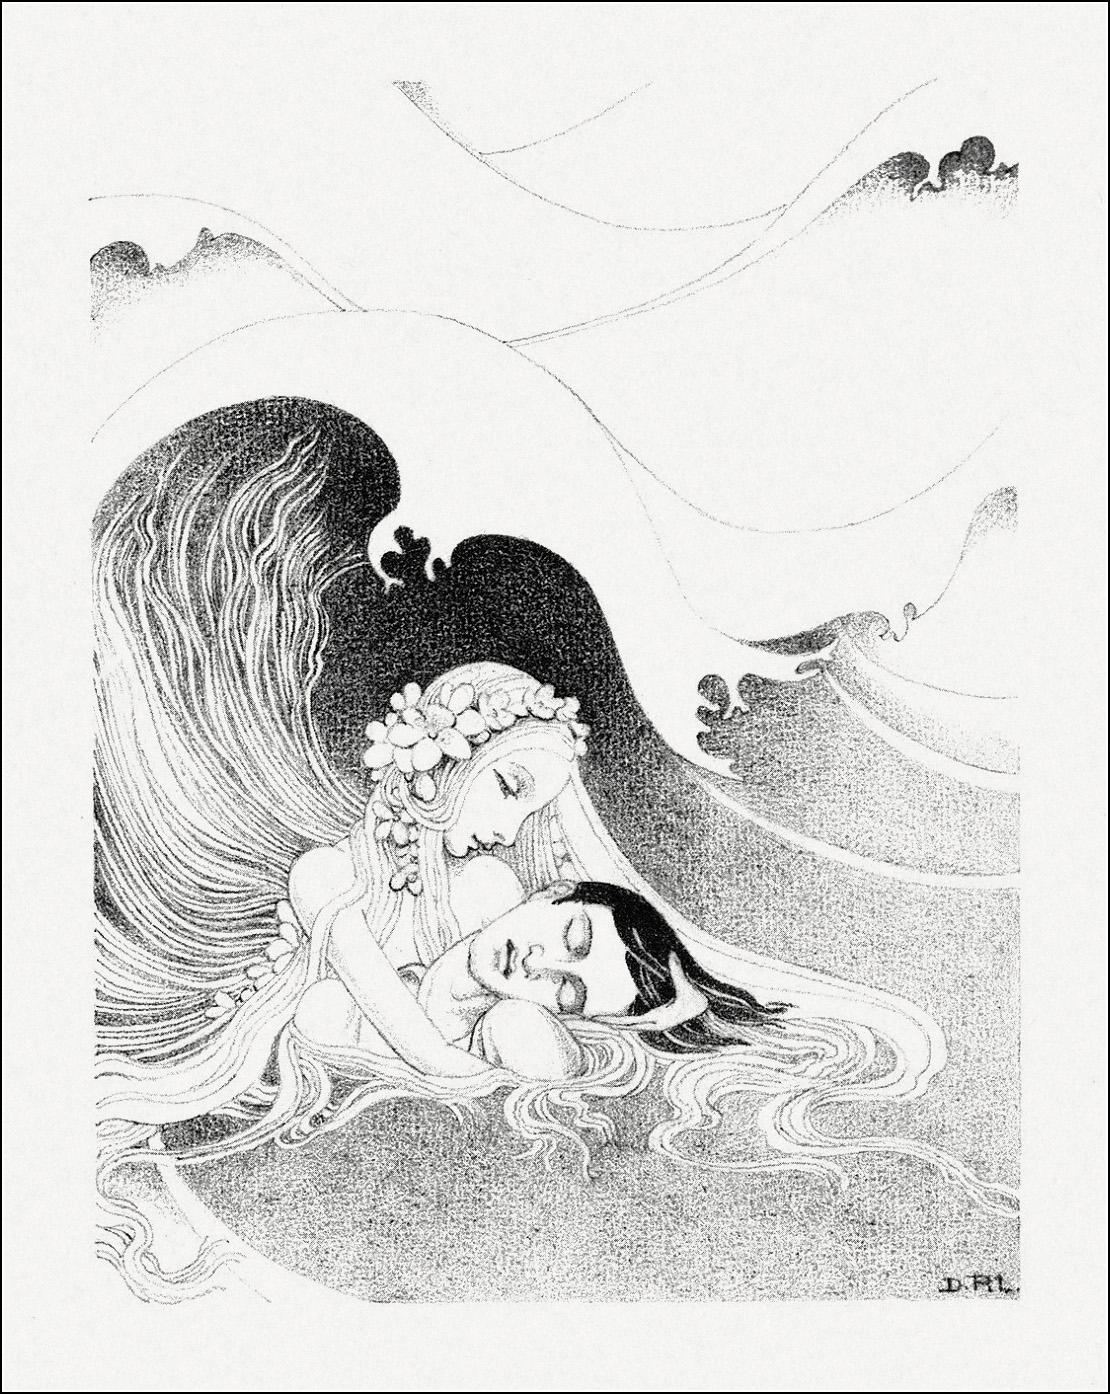 Dorothy Lathrop, The Little Mermaid 7